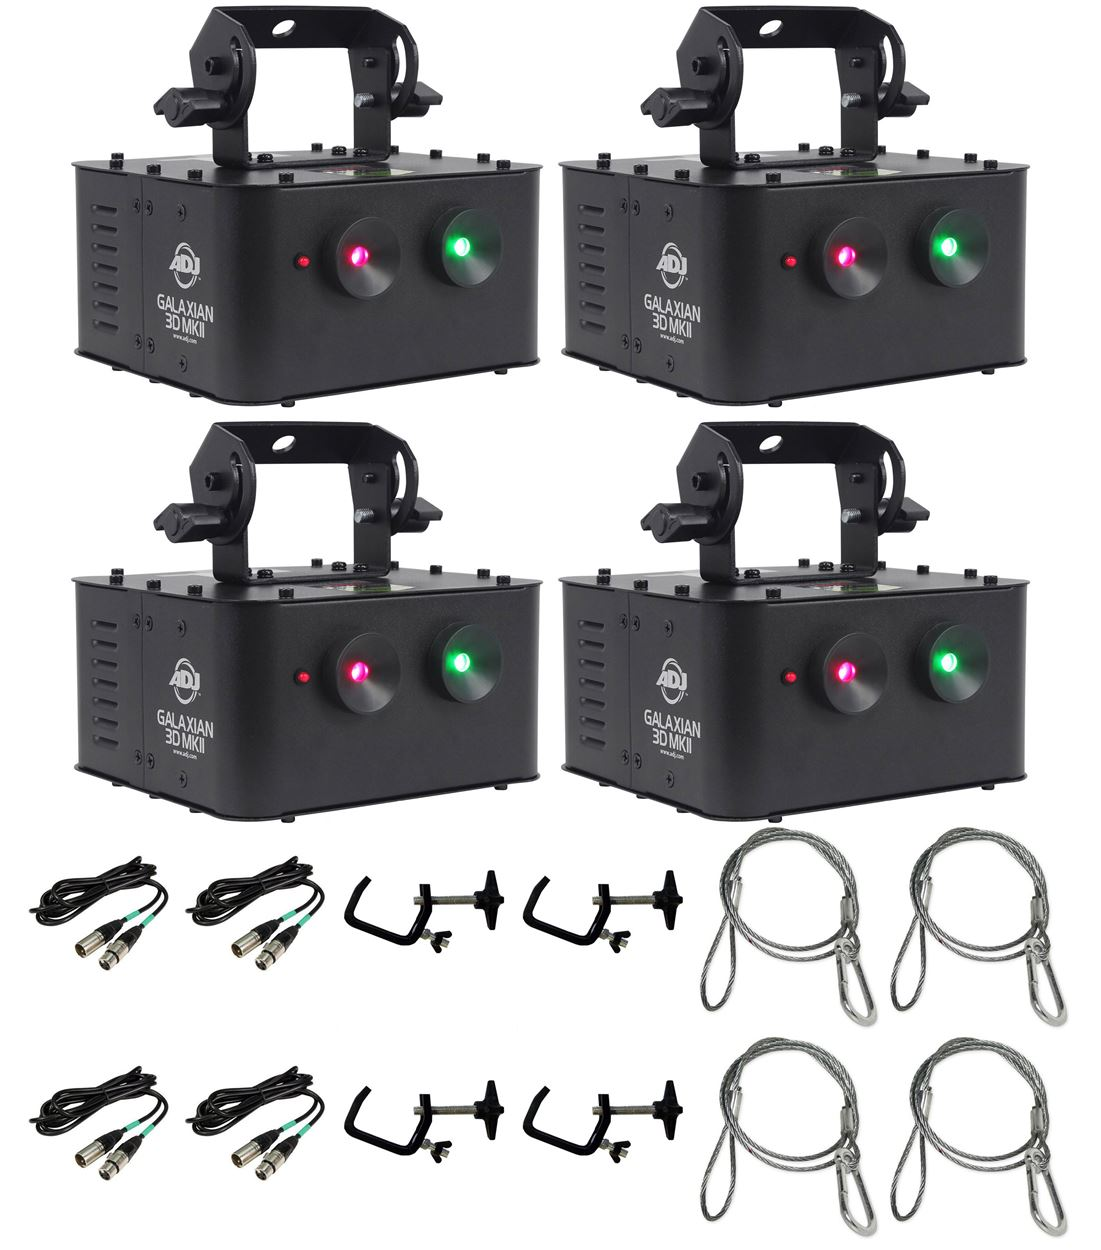 (4) American DJ GALAXIAN 3D MKII Laser Light + Clamps + Security + DMX Cables by American DJ